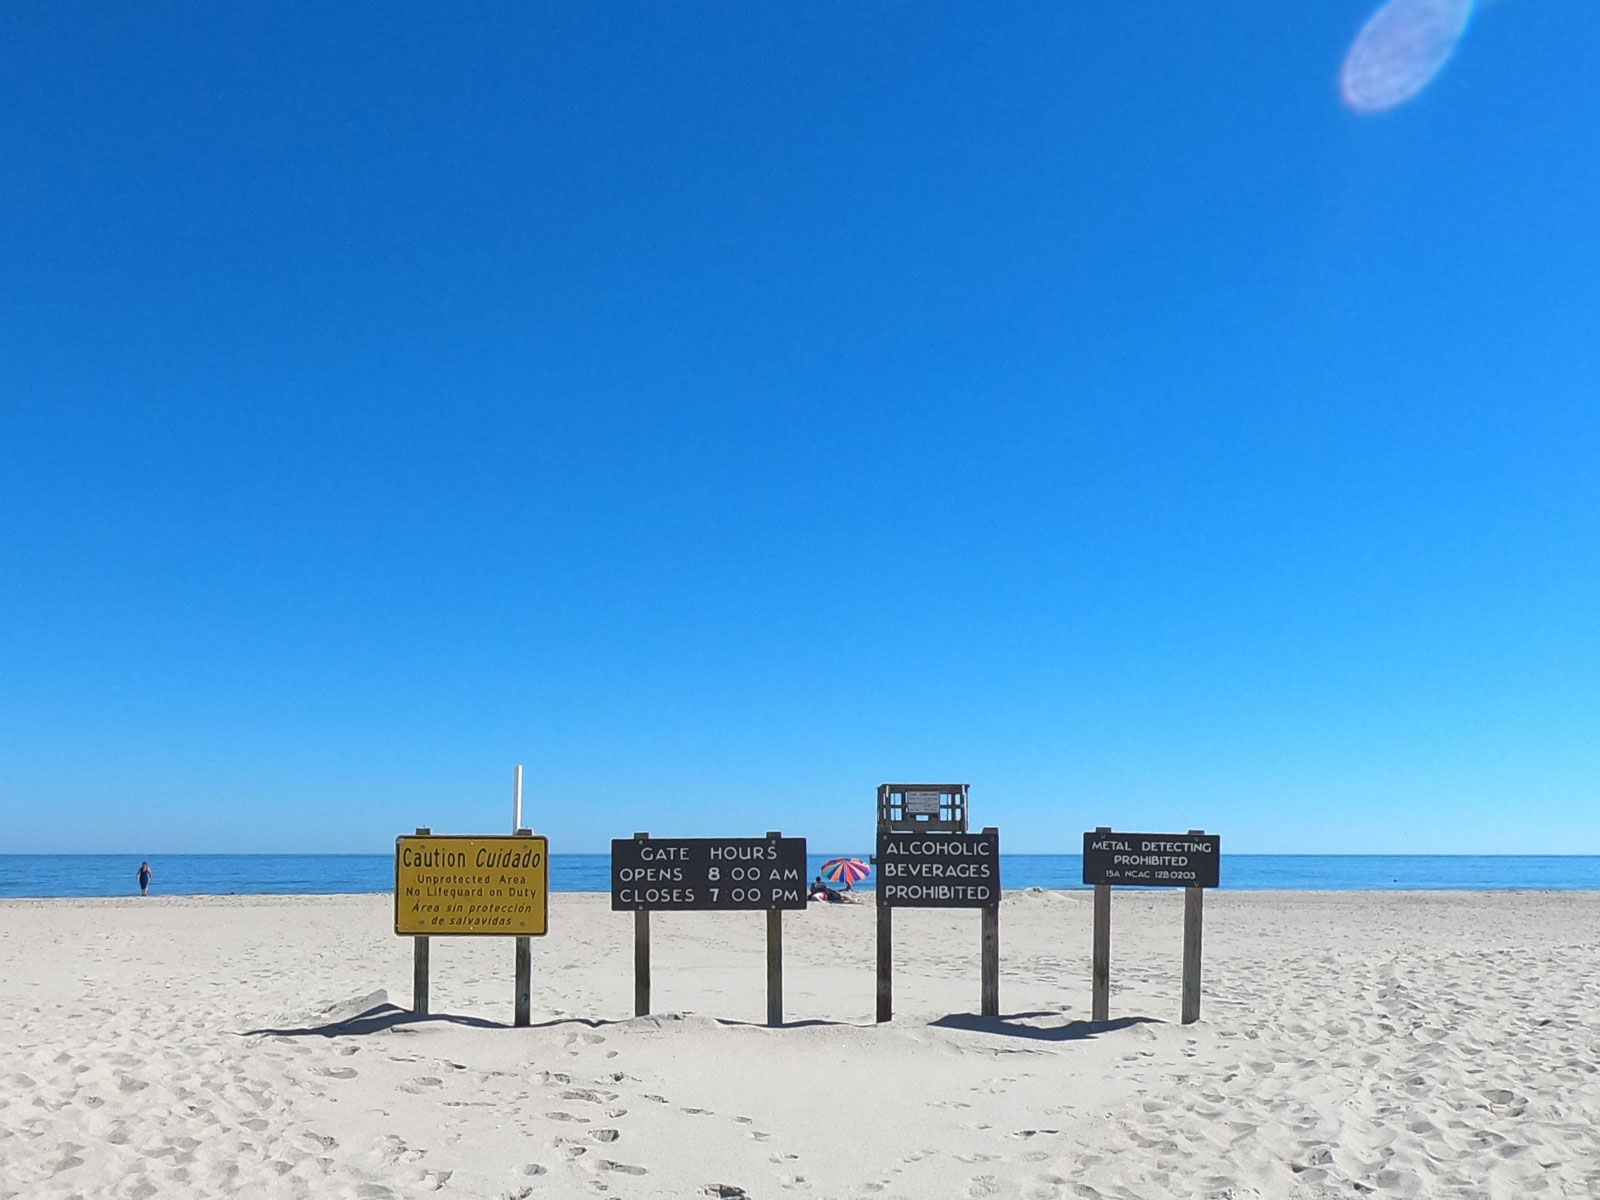 Signs at Kure Beach in North Carolina